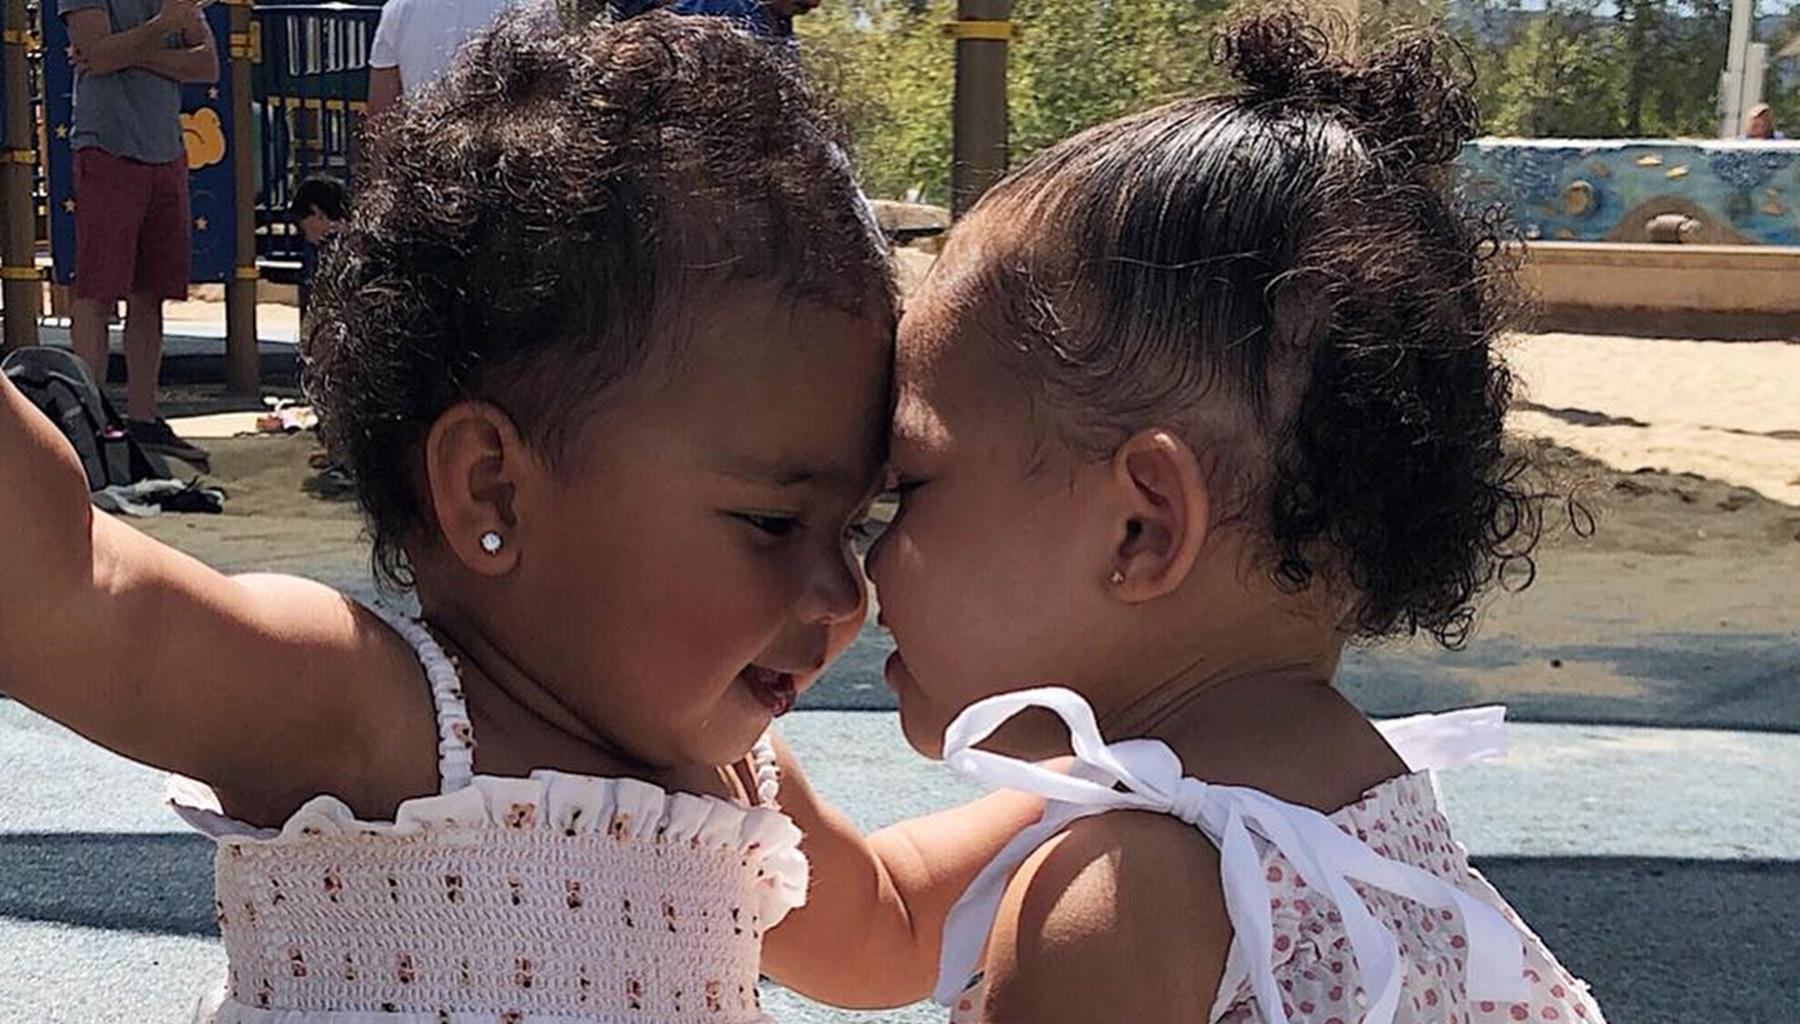 Khloe Kardashian Responds To Kylie Jenner's Emotional Message About Baby True -- Her Response Moved 'KUWTK' Fans